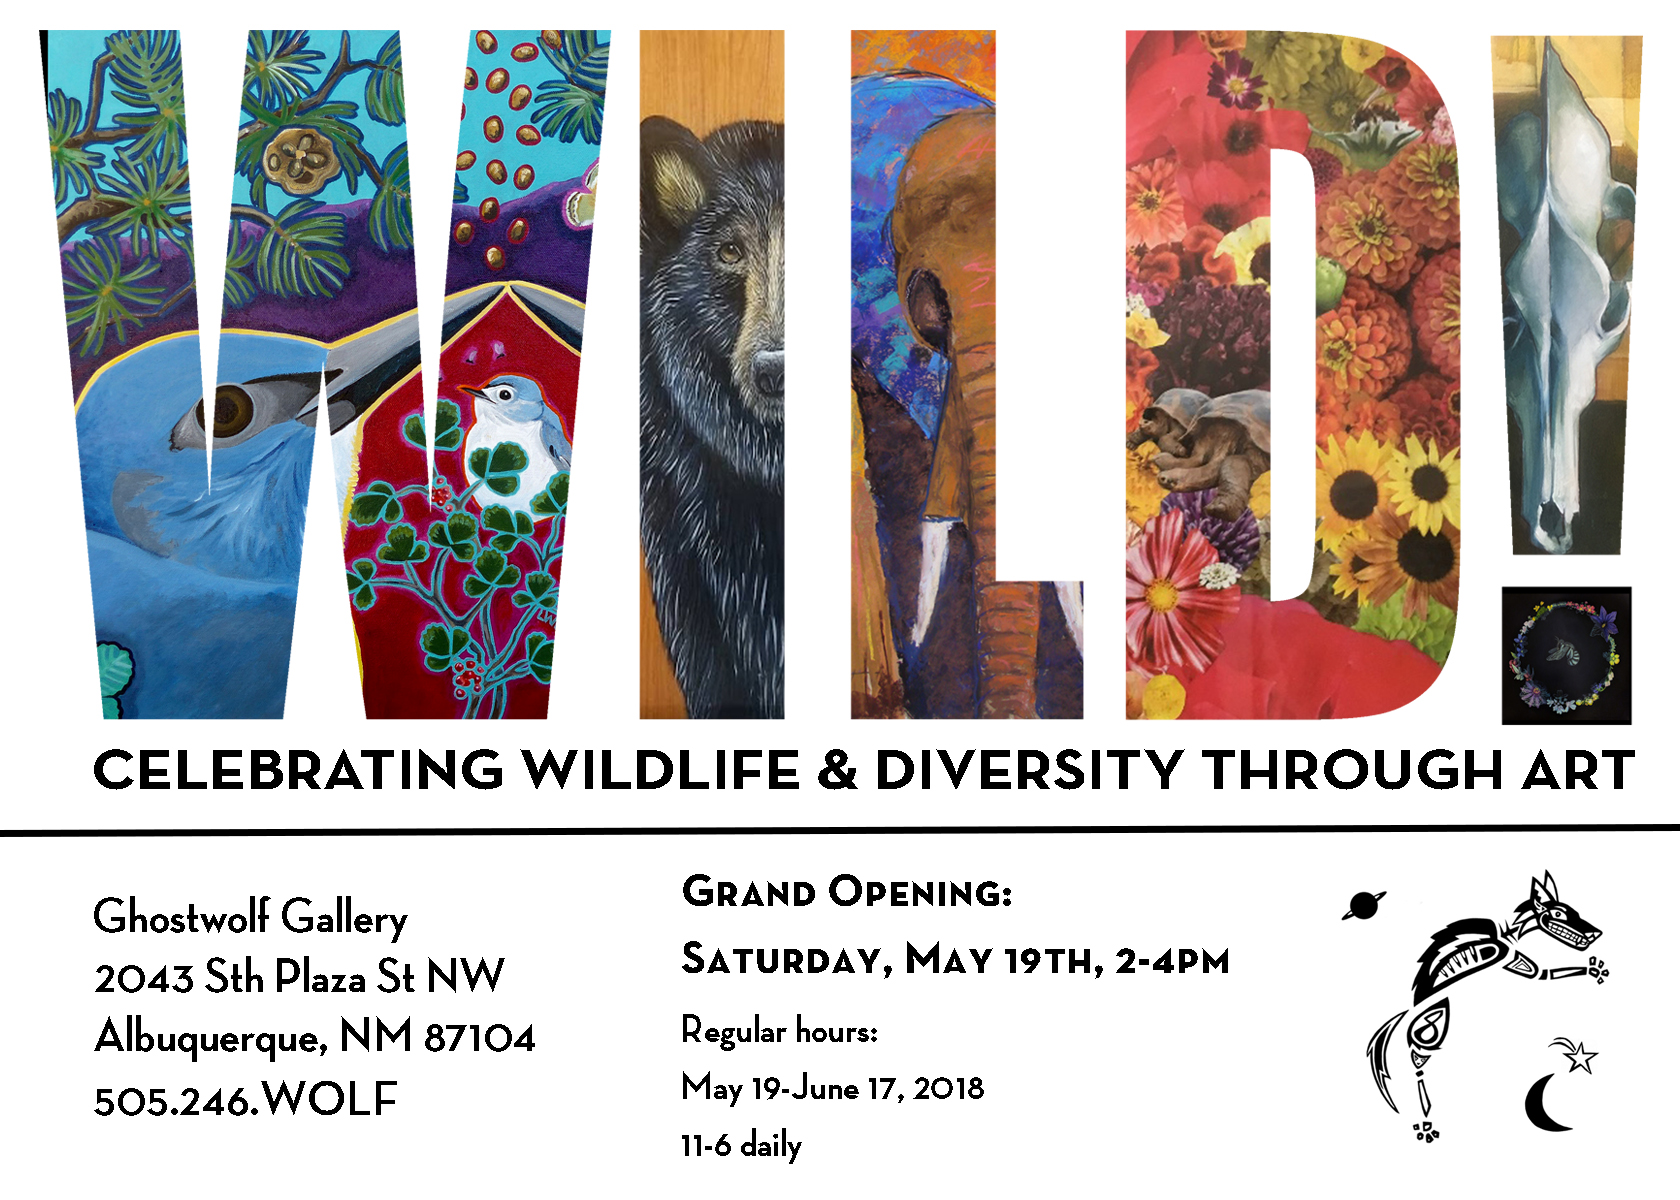 Ghostwolf Gallery – WILD! Opening Reception